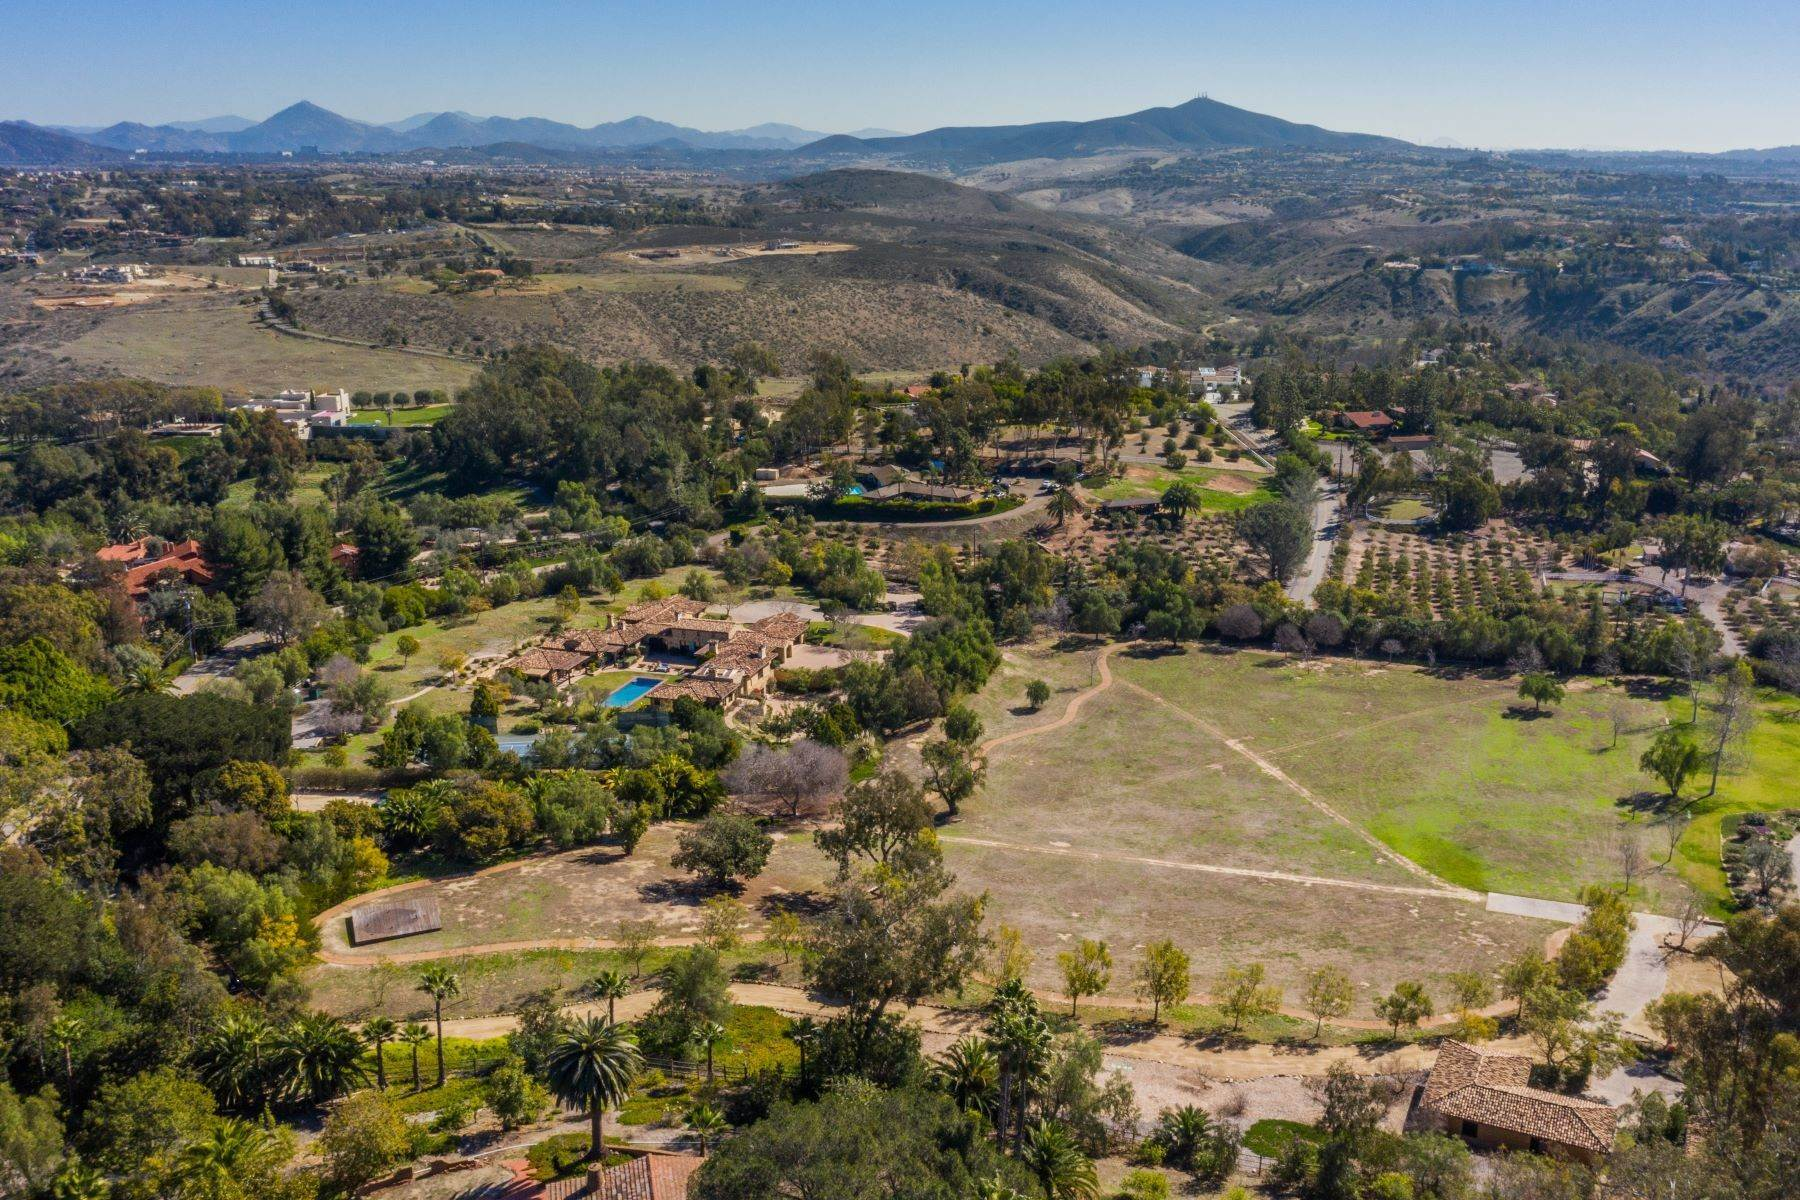 11. Land for Sale at 17048 El Mirador, Rancho Santa Fe, CA 92067 17048 El Mirador Rancho Santa Fe, California 92067 United States